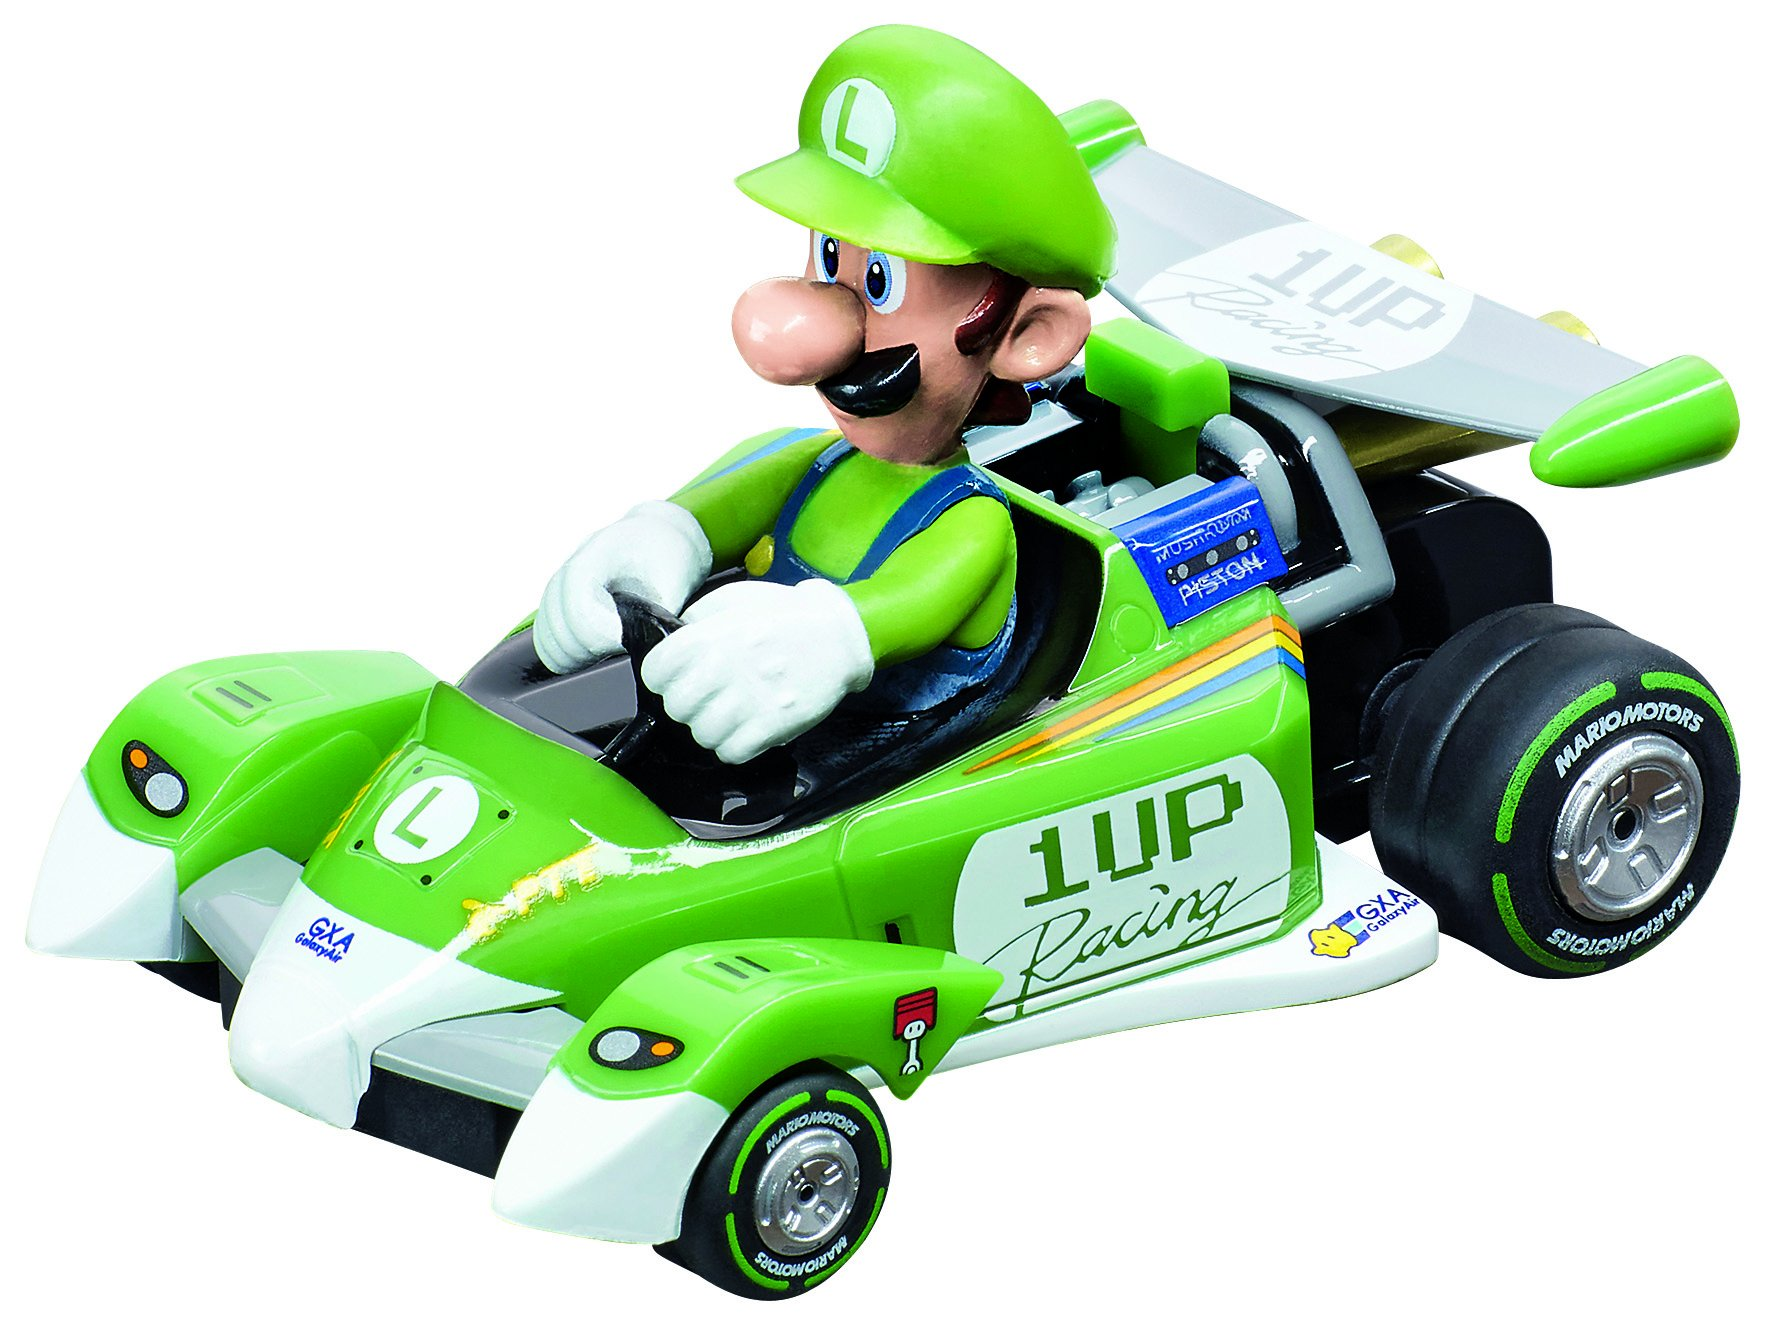 Carrera 64093 GO!!! Mario Kart Circuit Special - Luigi Slot Car (1:43 Scale) by Carrera